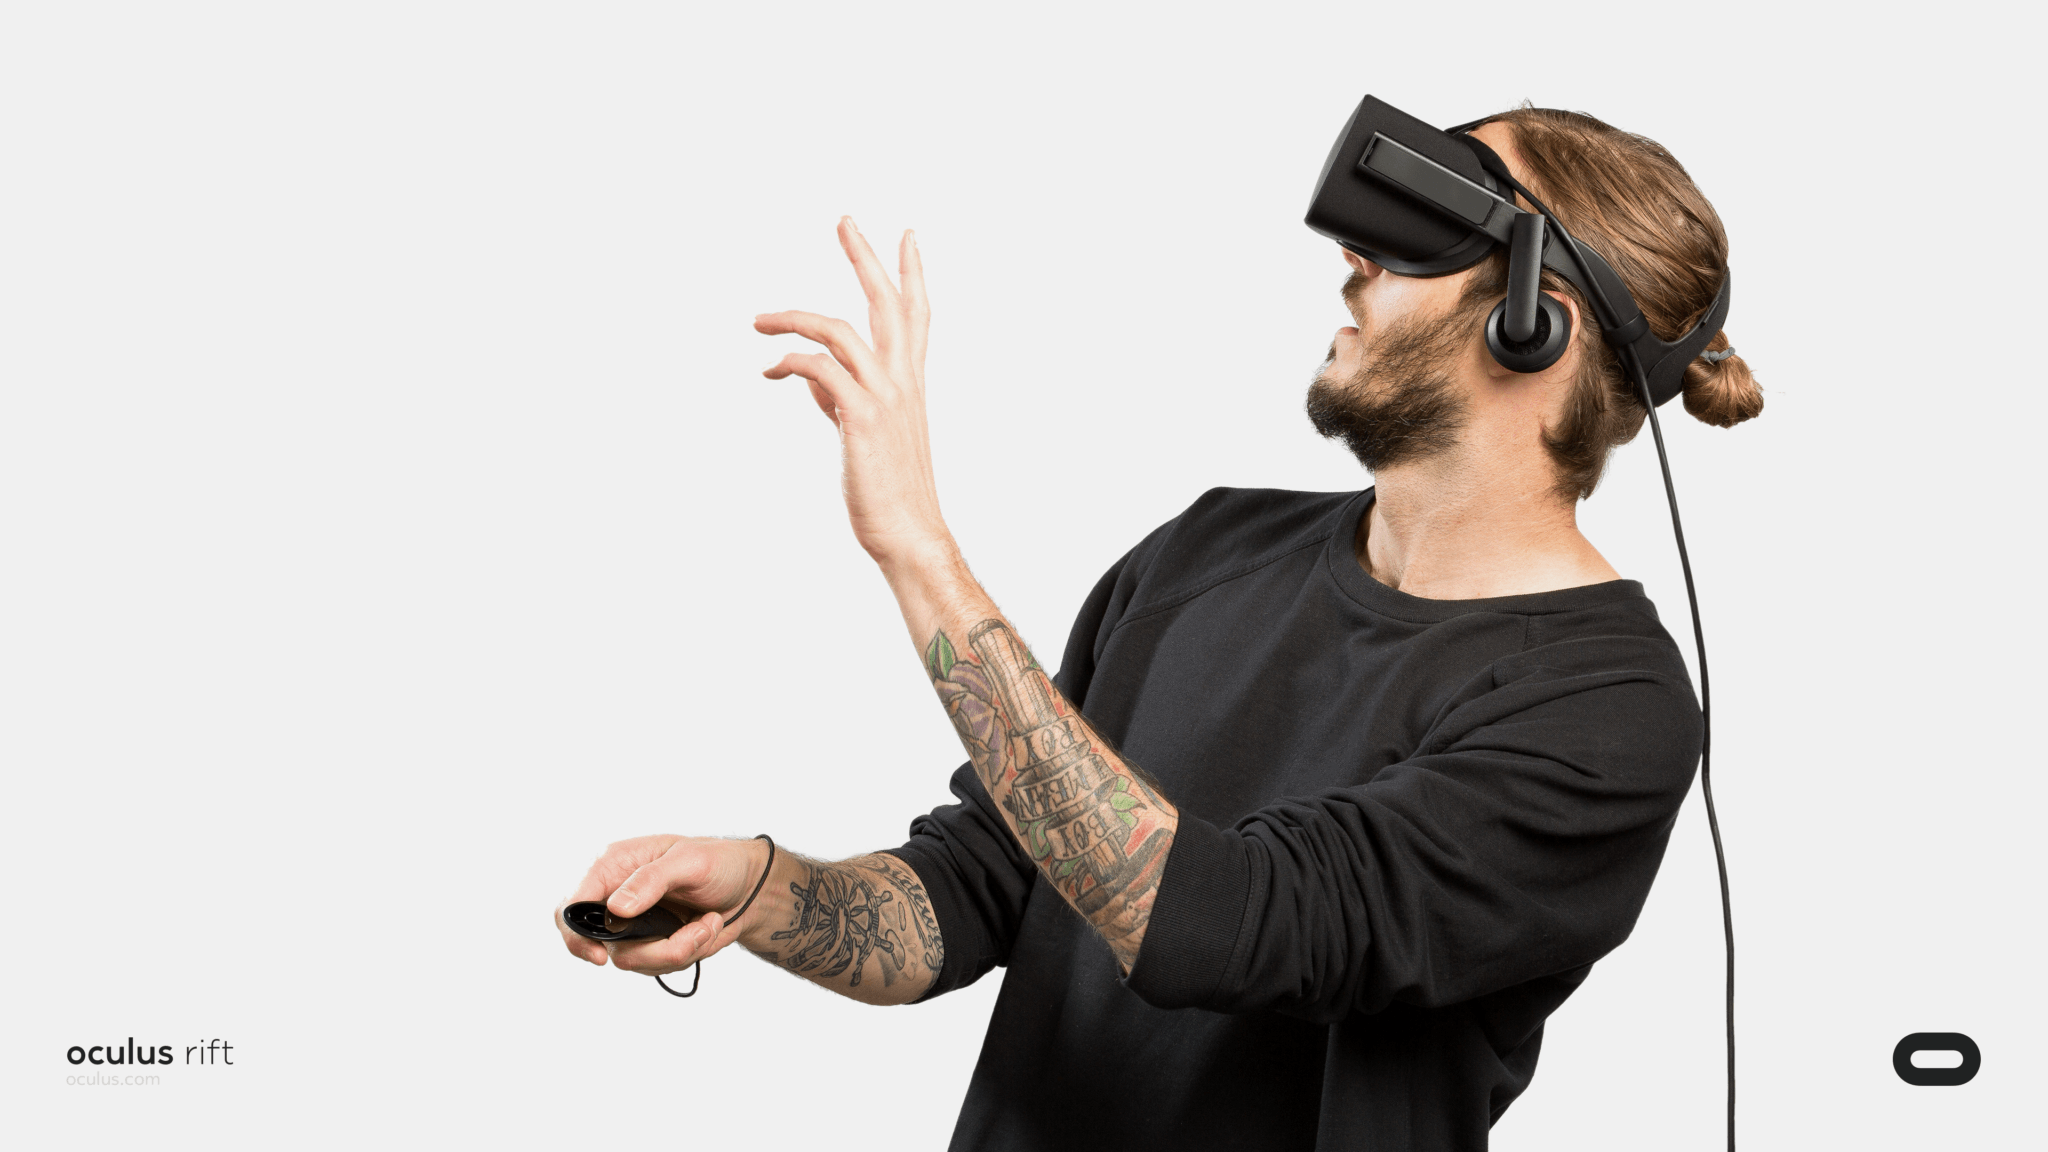 Oculus Rift headsets have stopped working because of an expired certificate